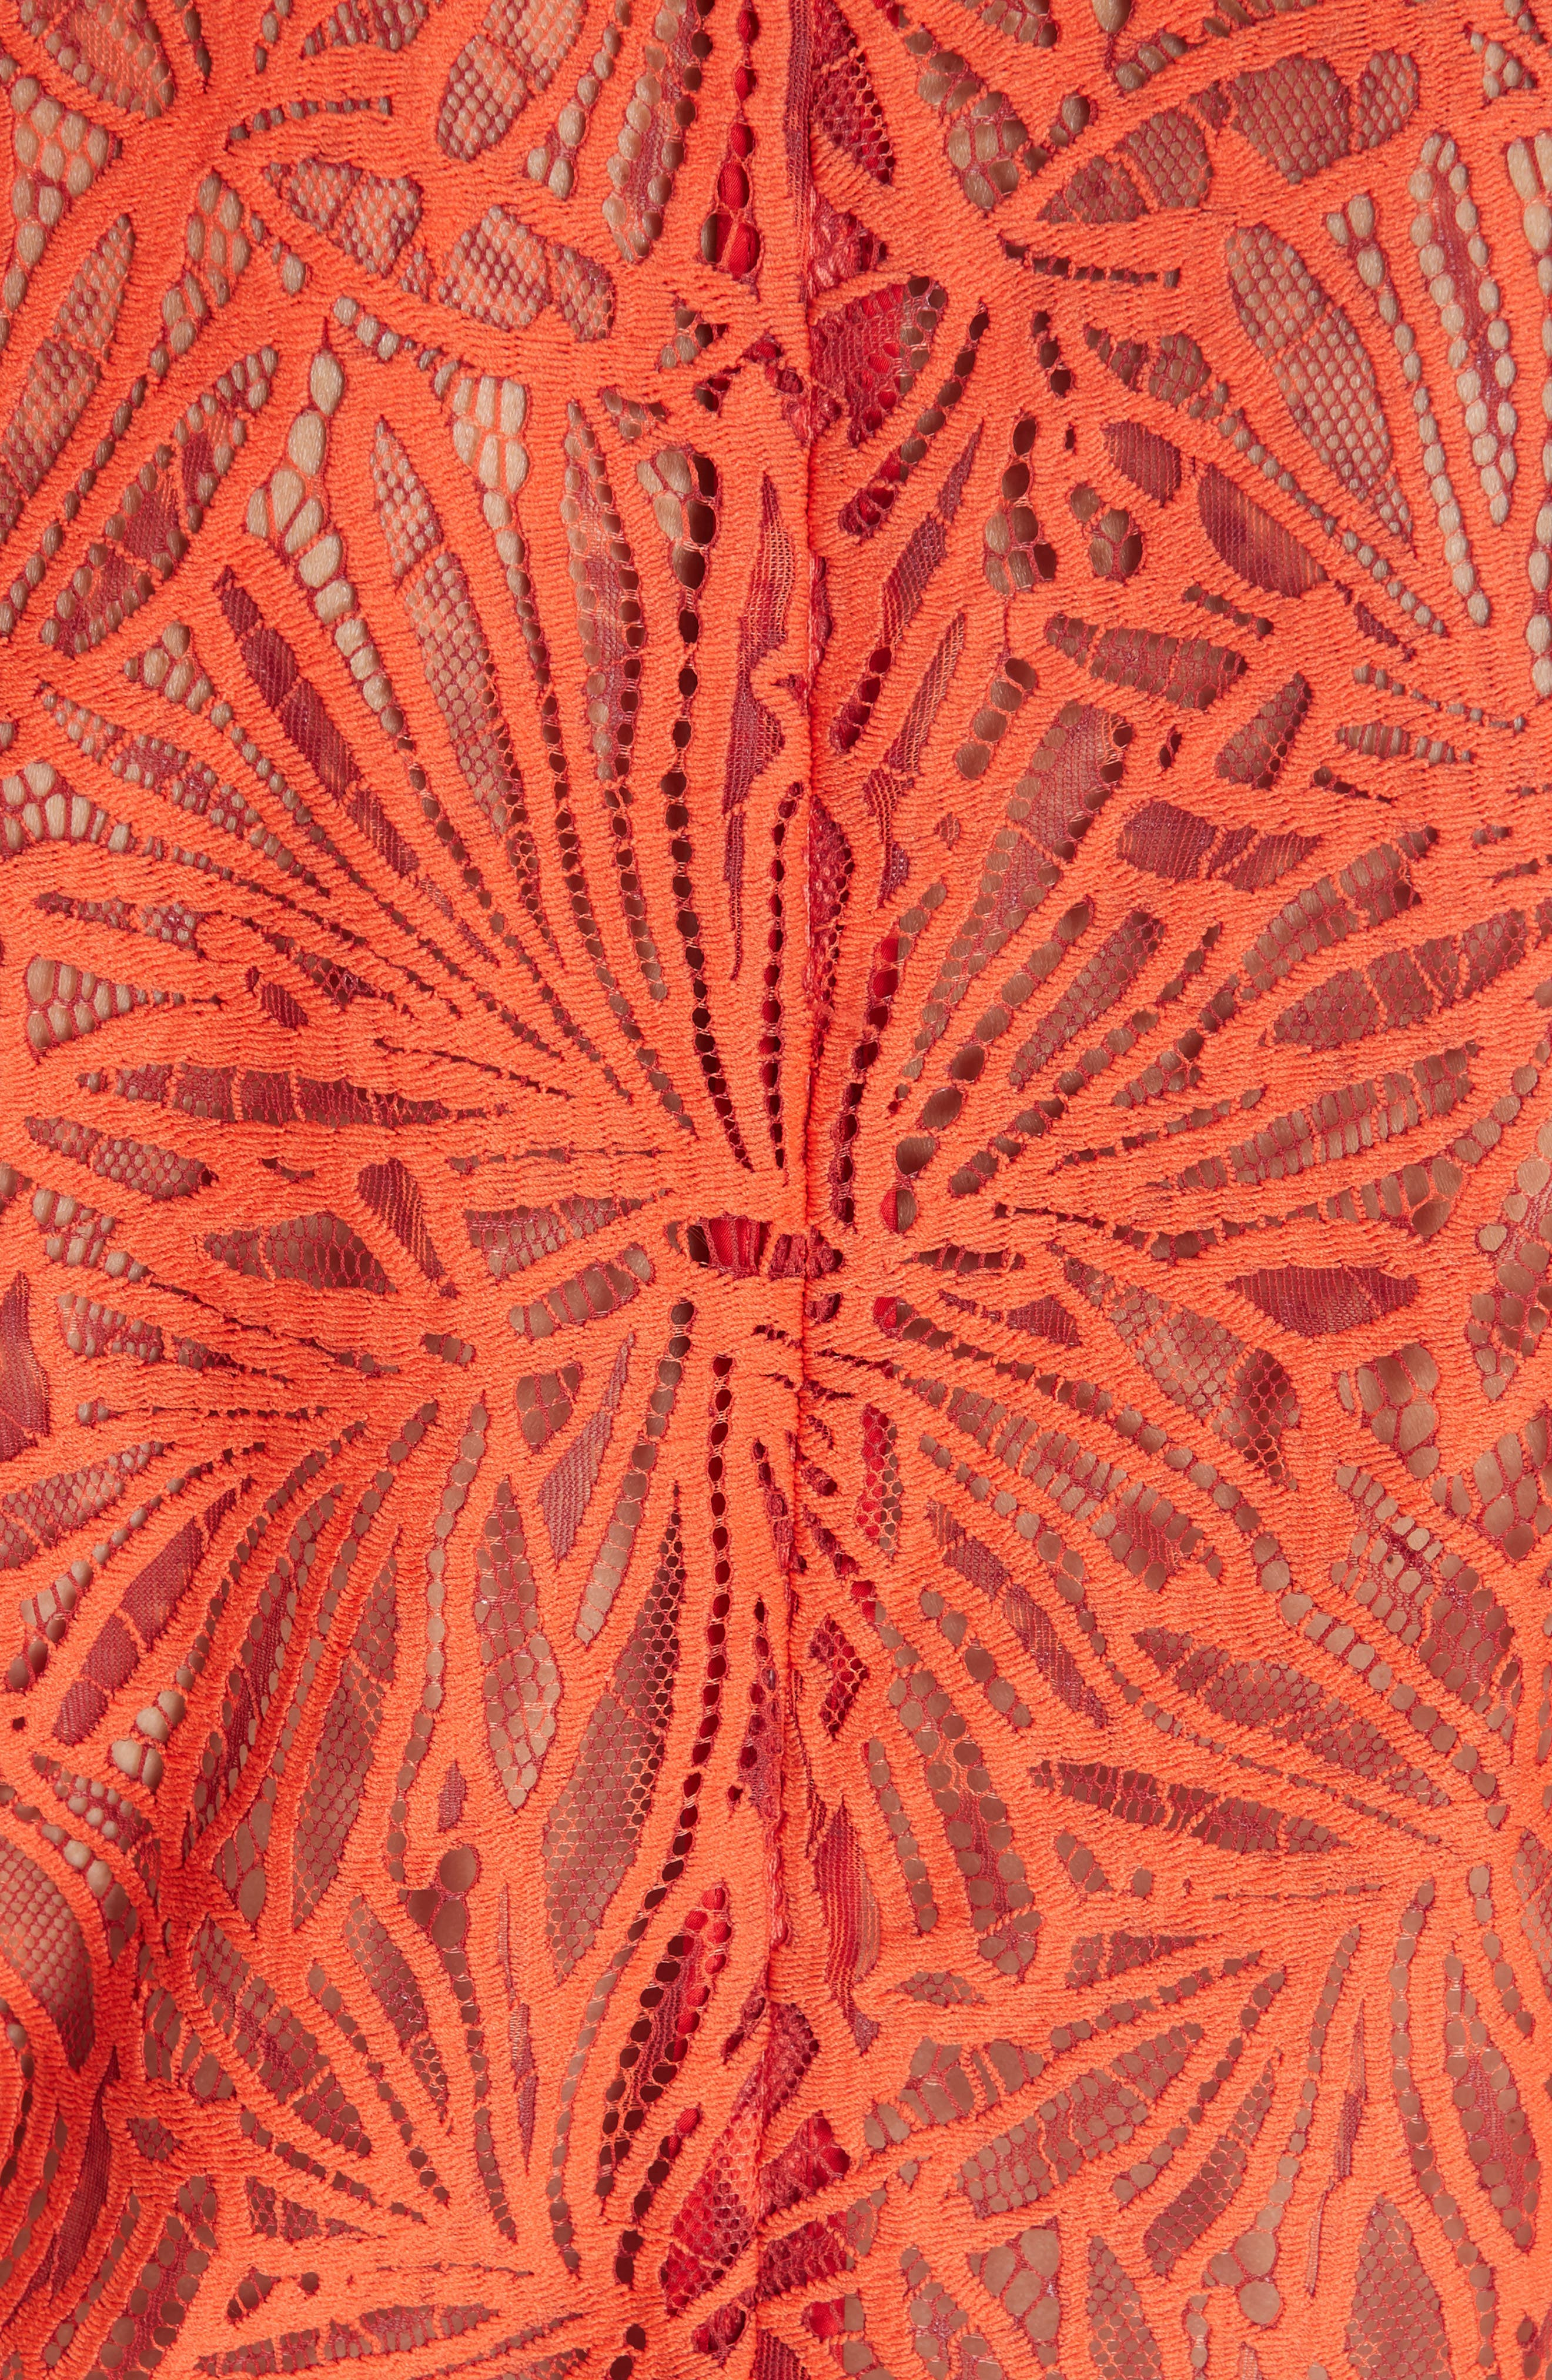 PROENZA SCHOULER,                             Scalloped Stretch Lace Top,                             Alternate thumbnail 5, color,                             TANGERINE